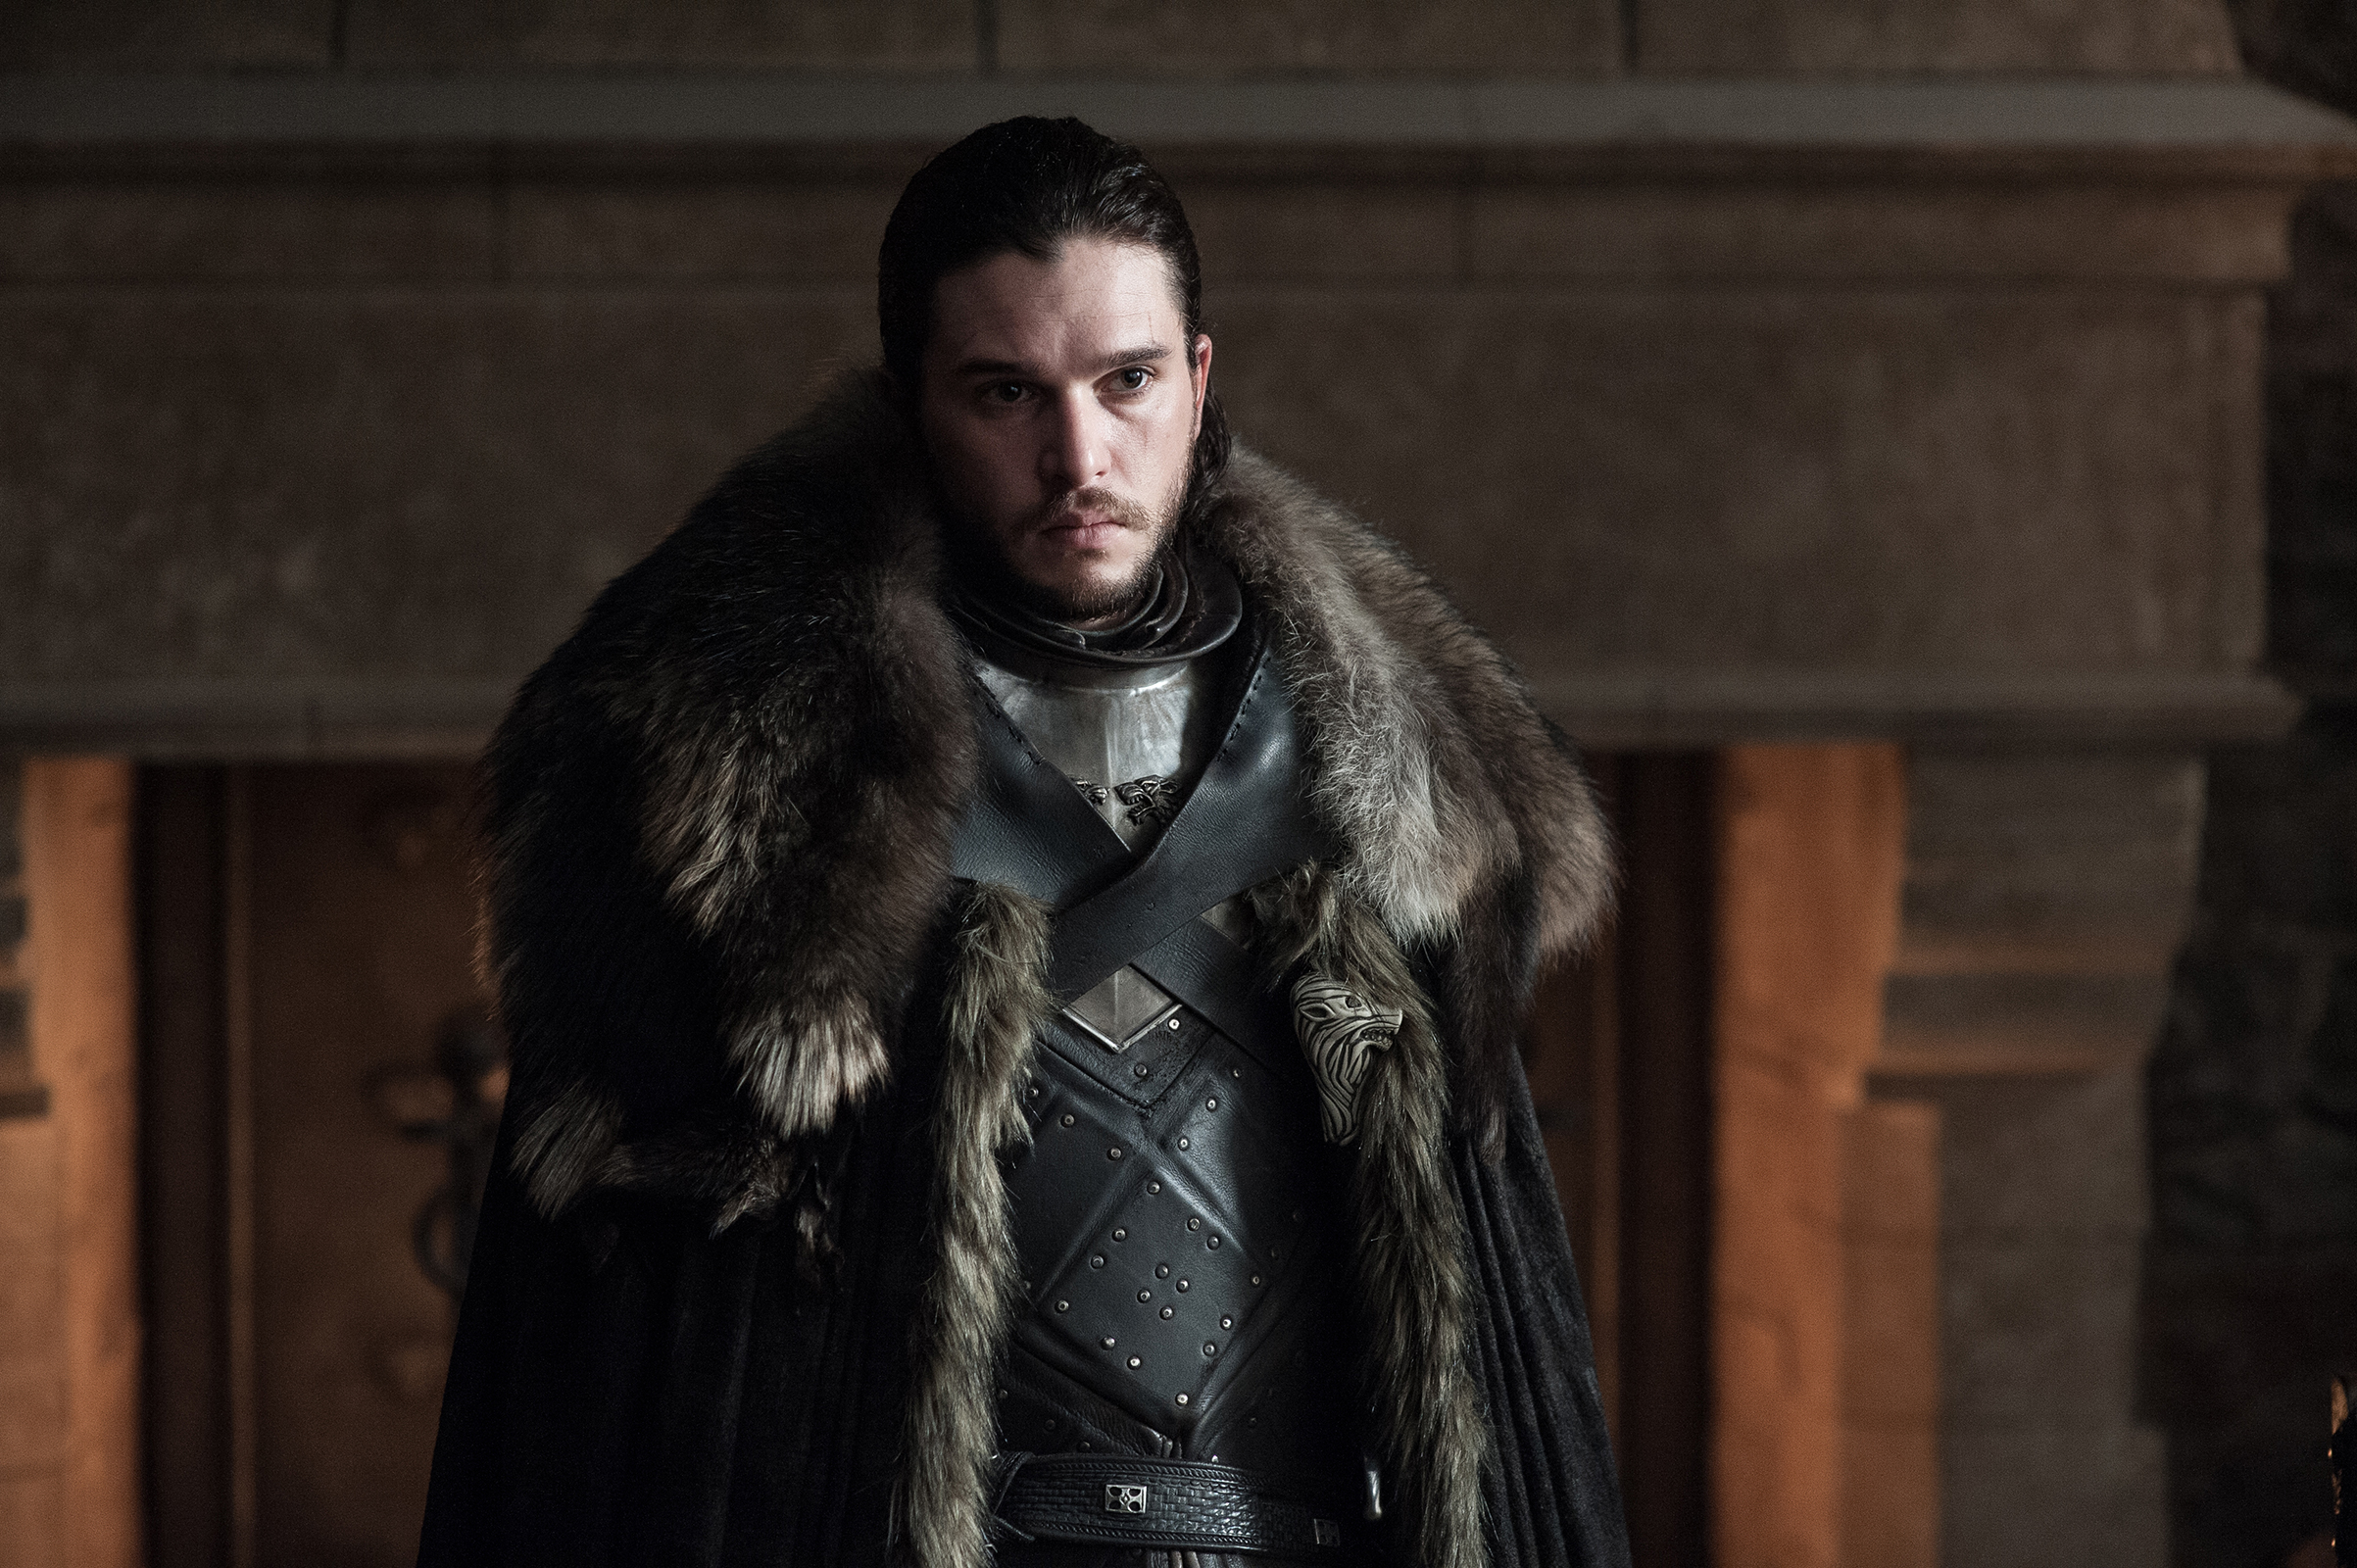 Game Of Thrones Season 7 Jon Snow, HD Tv Shows, 4k Wallpapers, Images, Backgrounds, Photos and ...